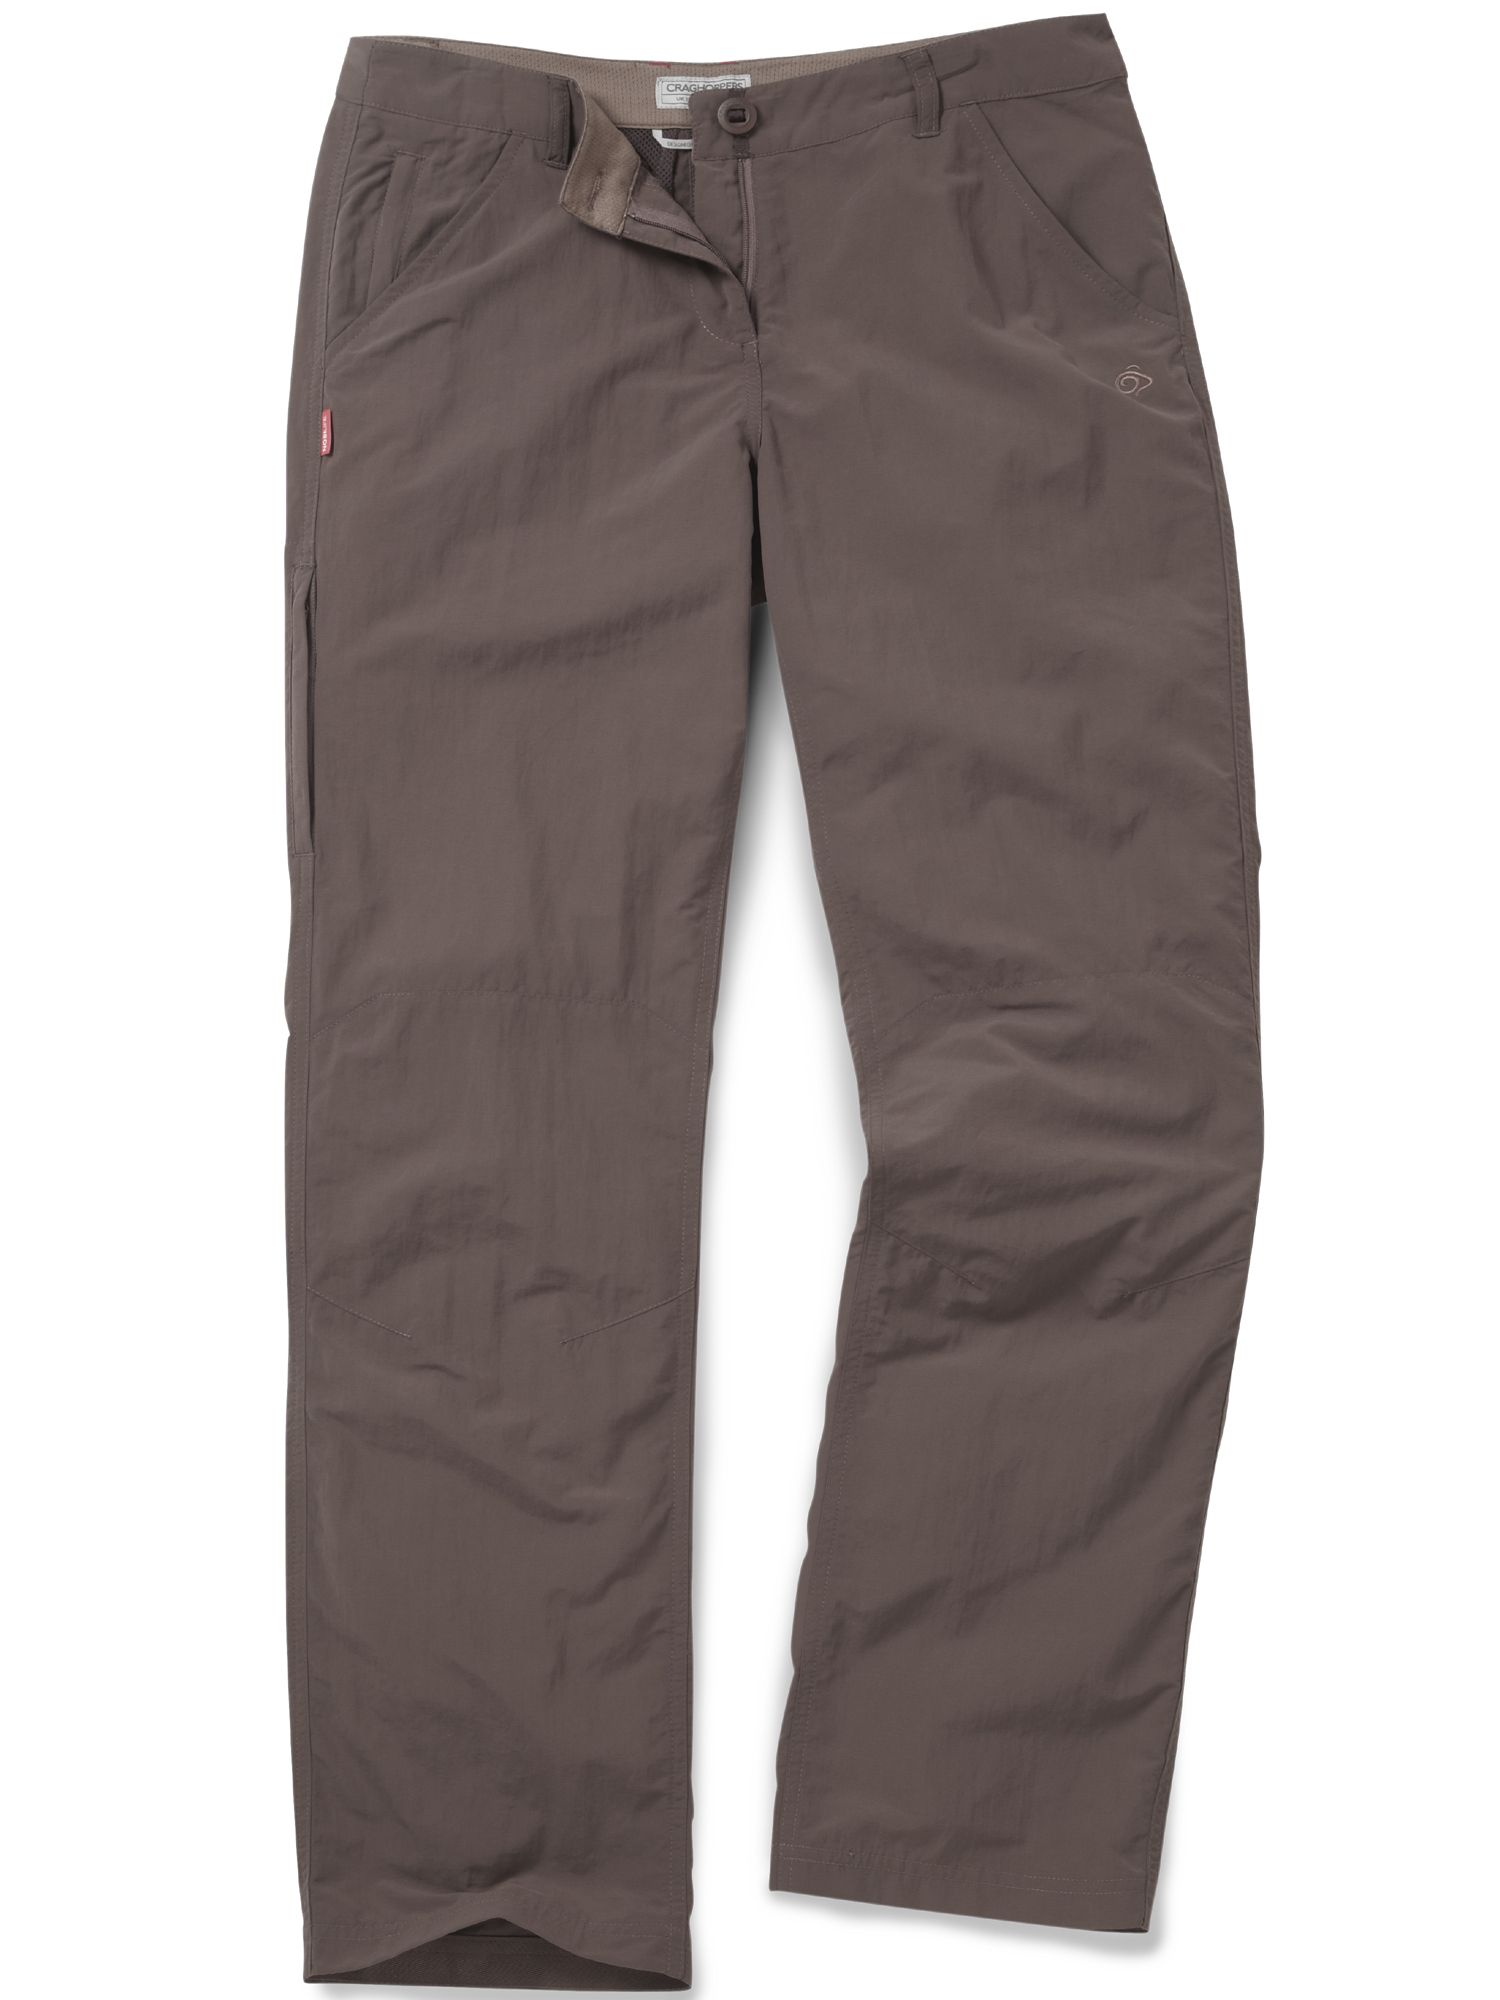 Craghoppers NosiLife Trousers, Coffee